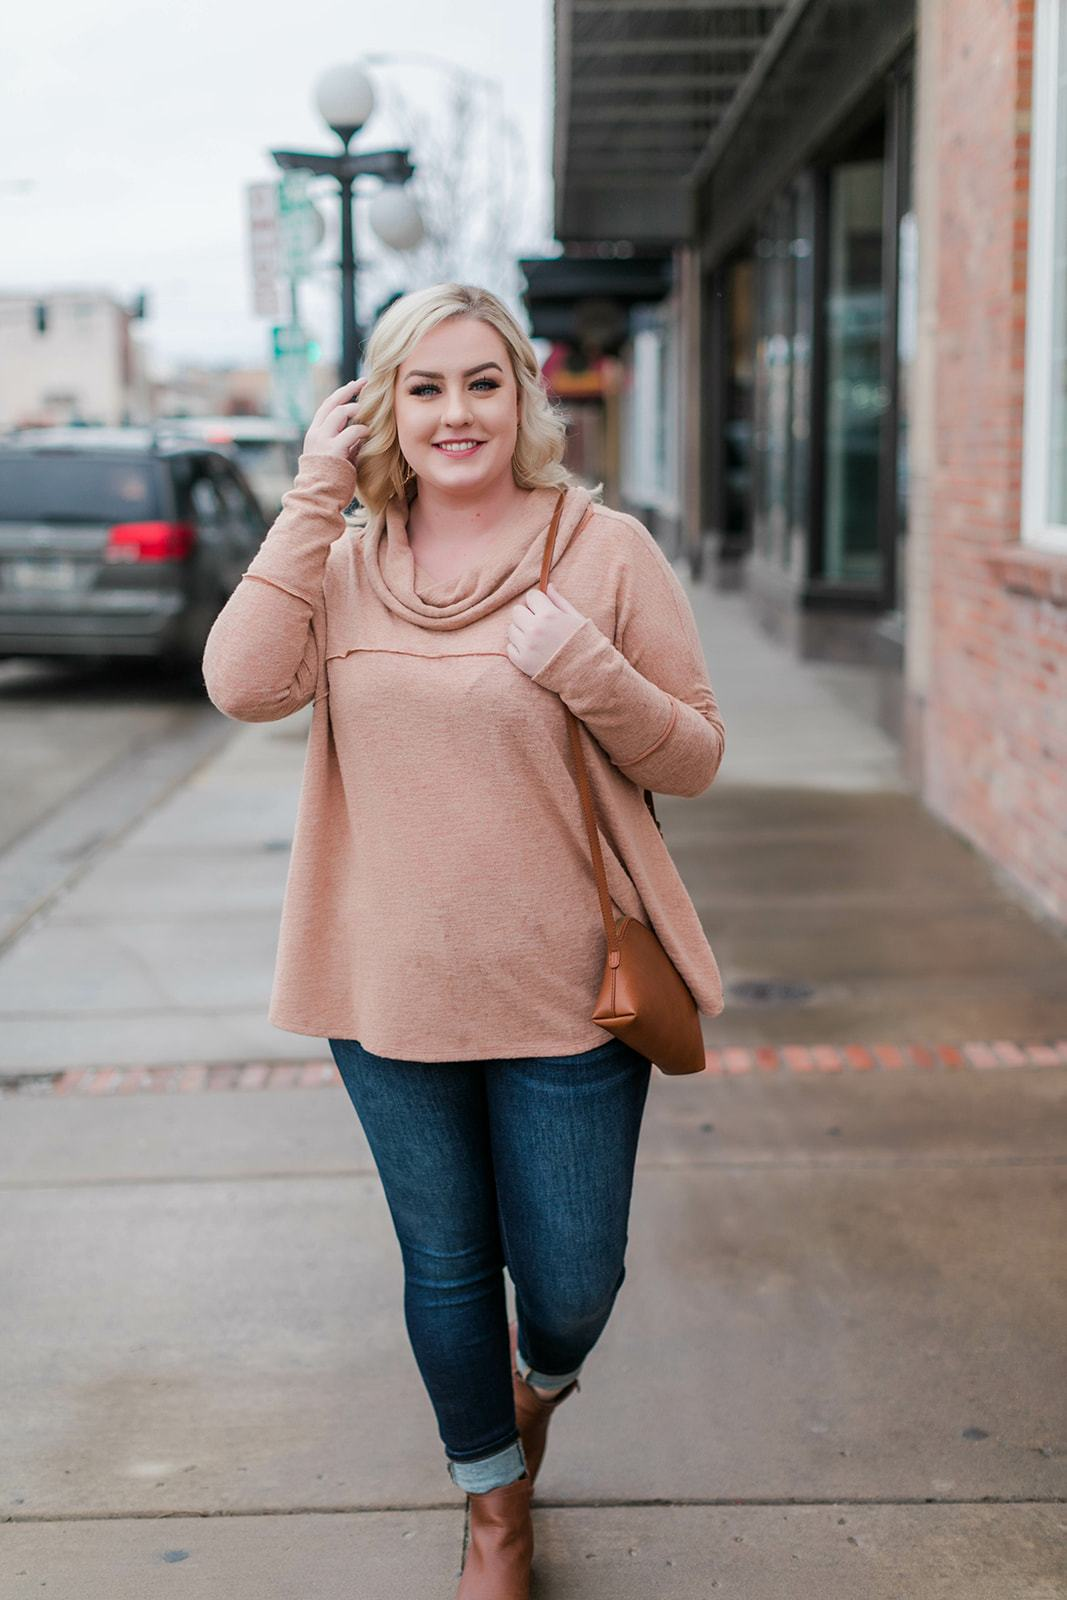 Seams Perfect To Me Top - Lola Cerina Boutique